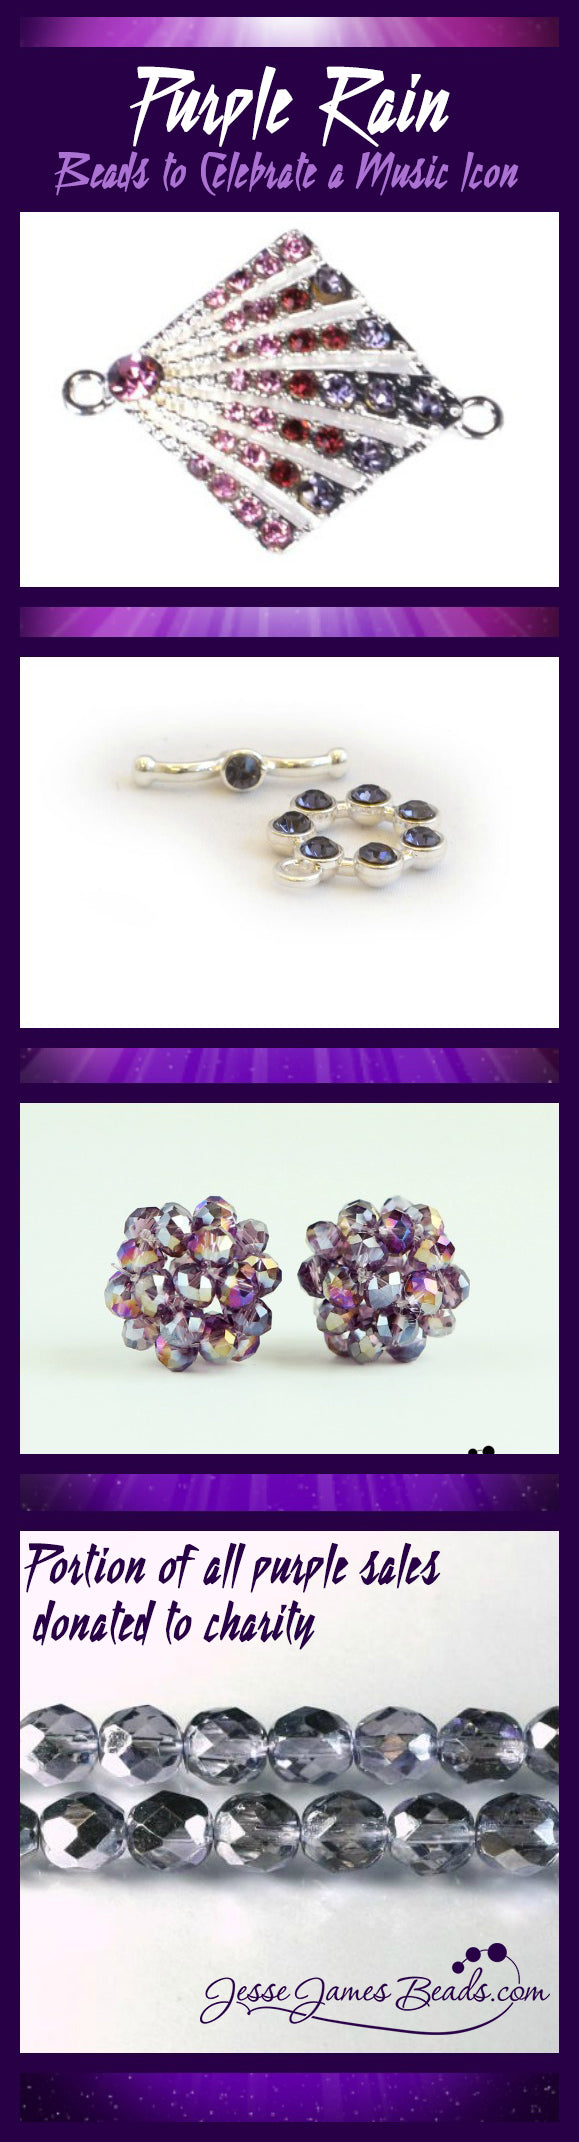 Purple beads to celebrate Prince - 10% of all purple sales will be donated in Prince's honor to Beads of Courage Charity